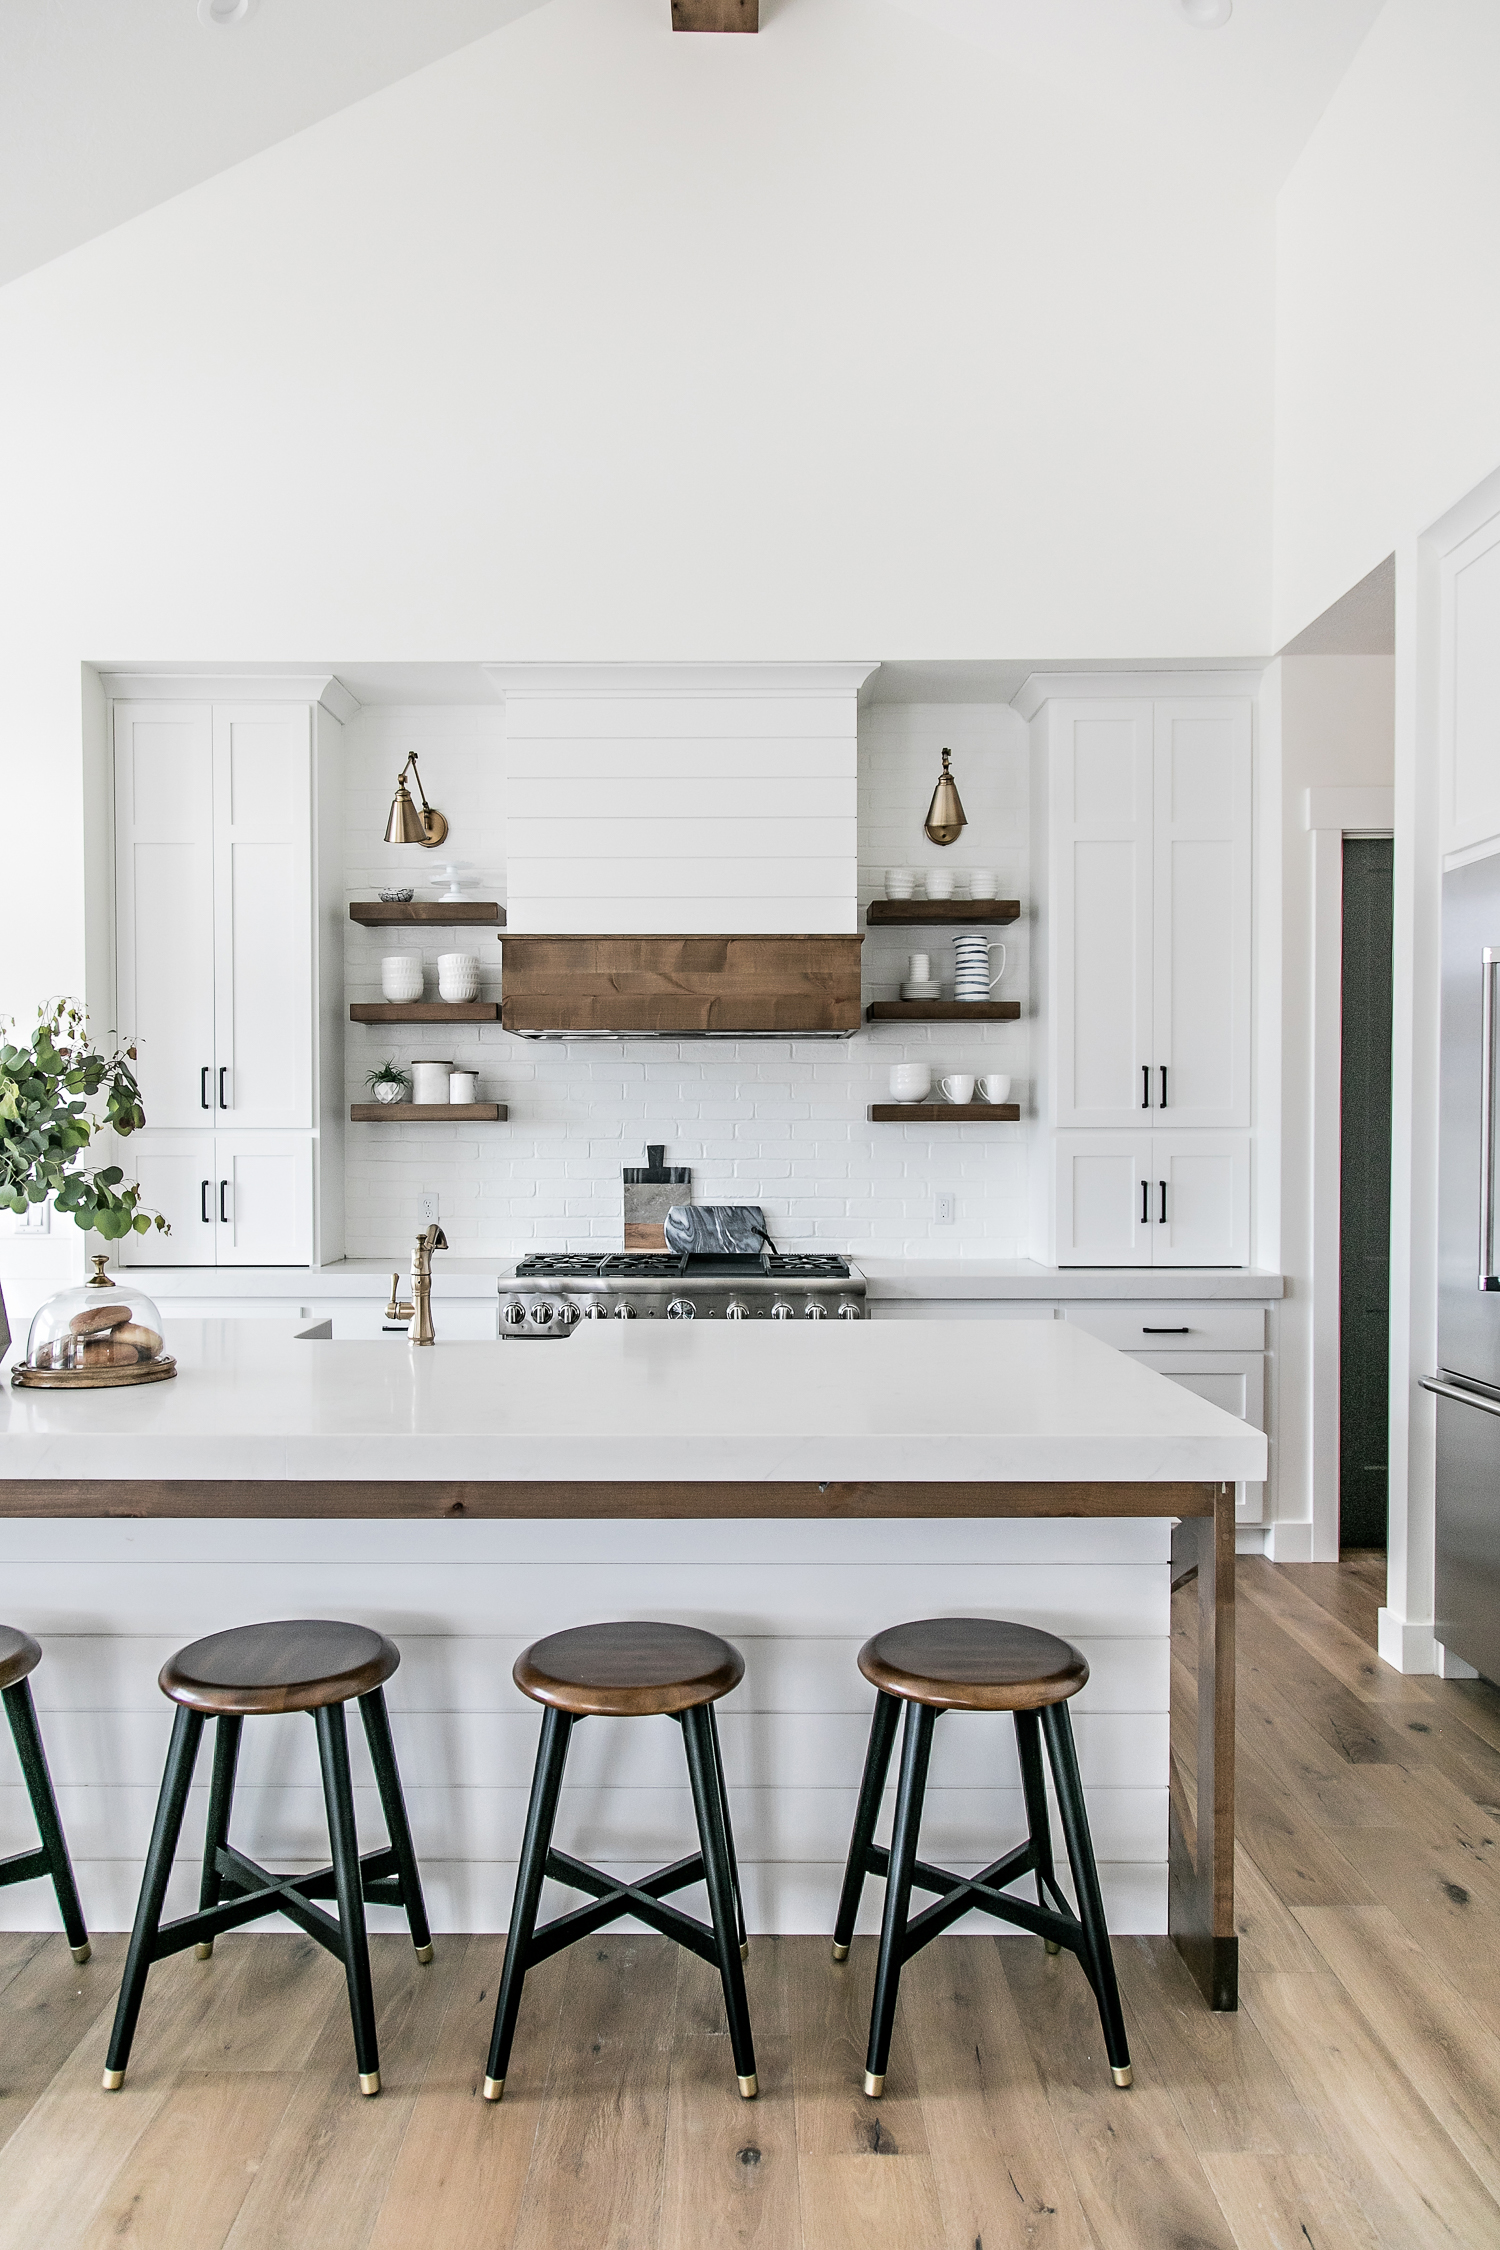 Kitchen Room Interior Design: SMI Modern Farmhouse Kitchen And Dining Nook